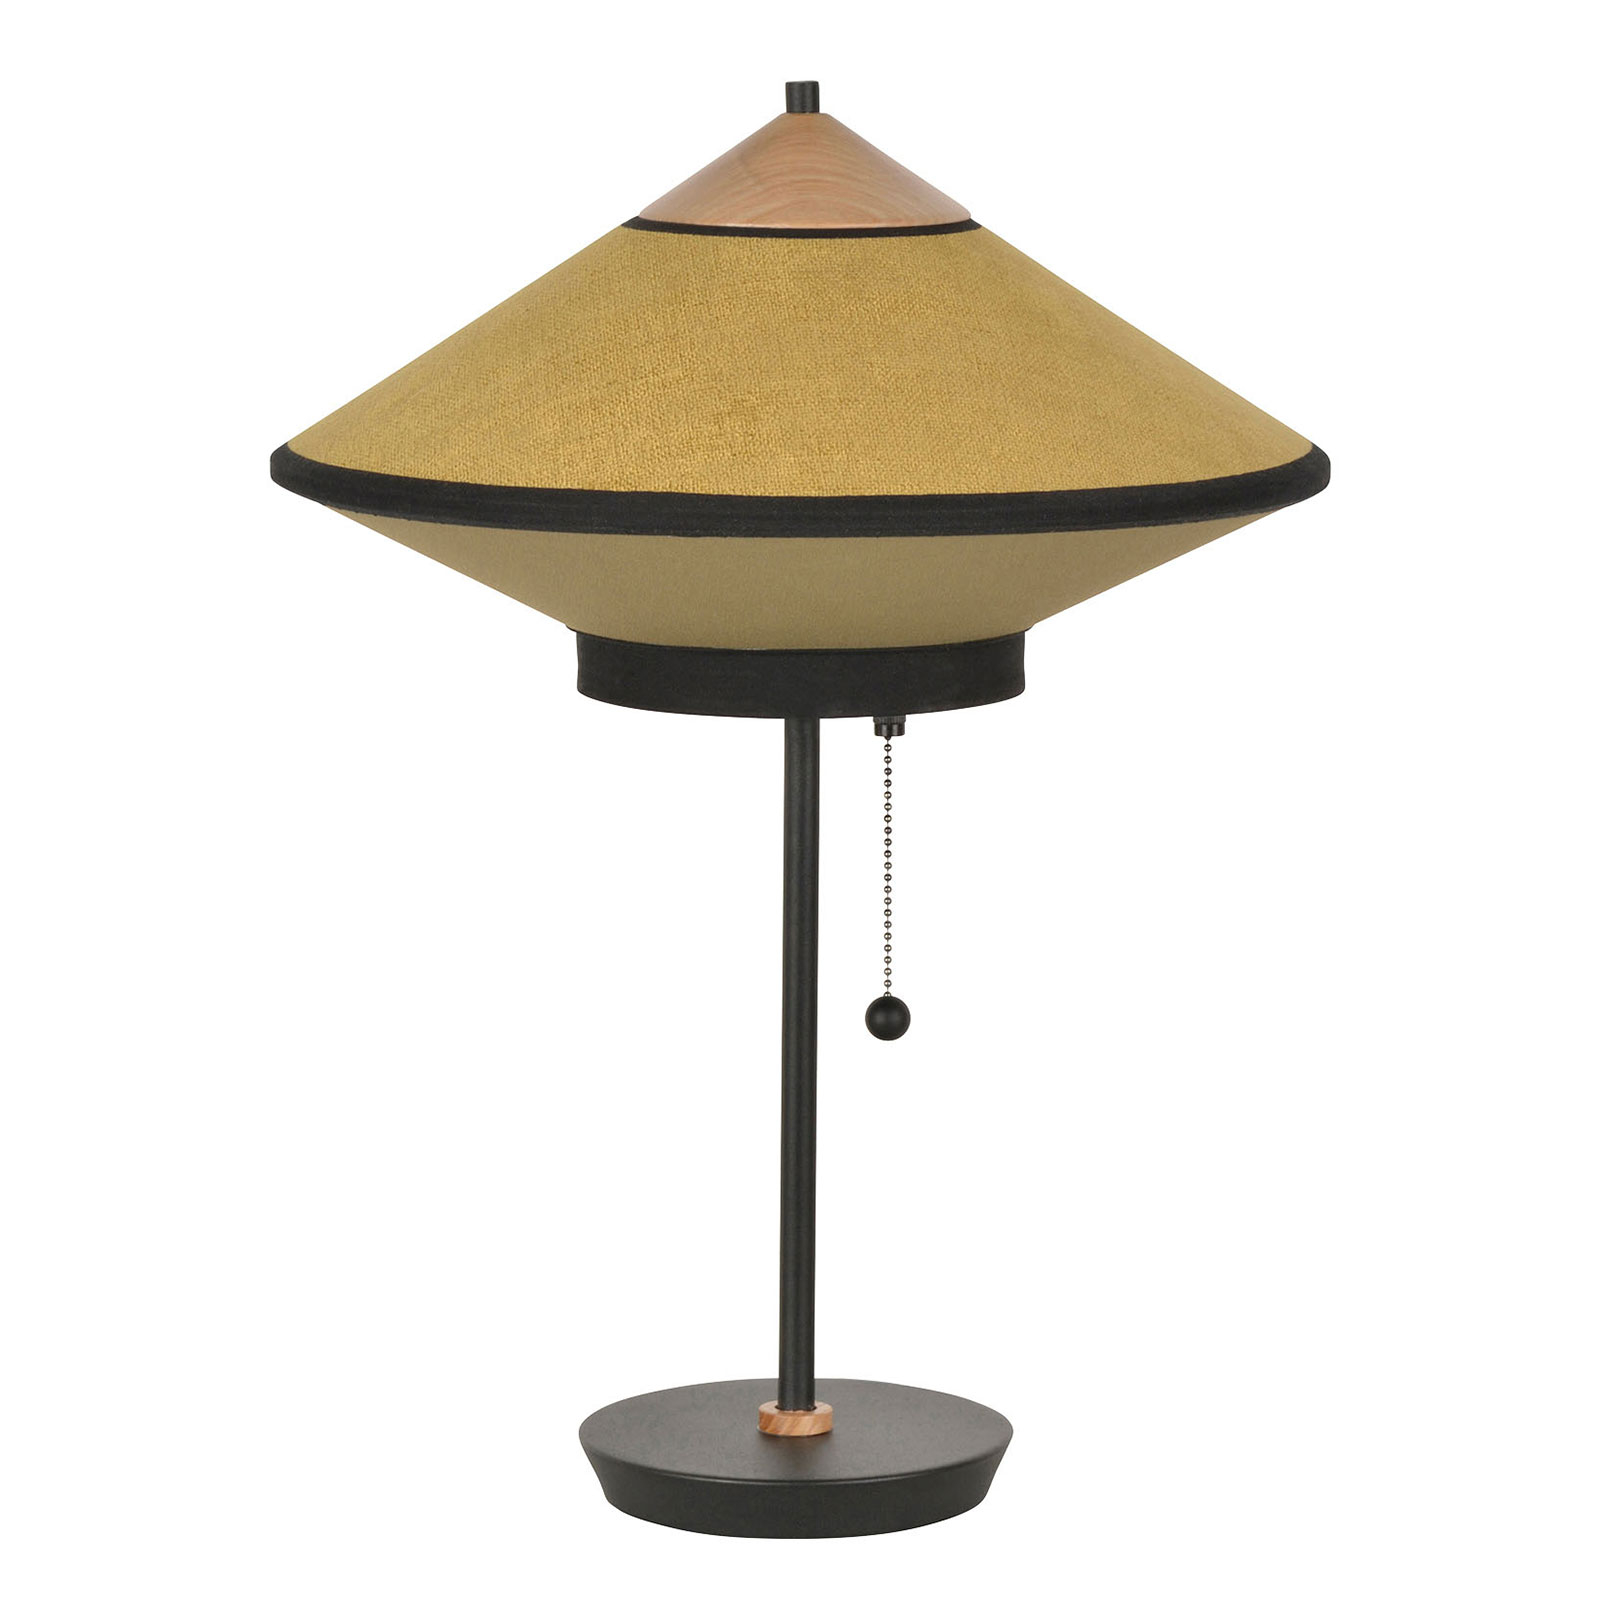 Forestier Cymbal S lampe à poser, bronze